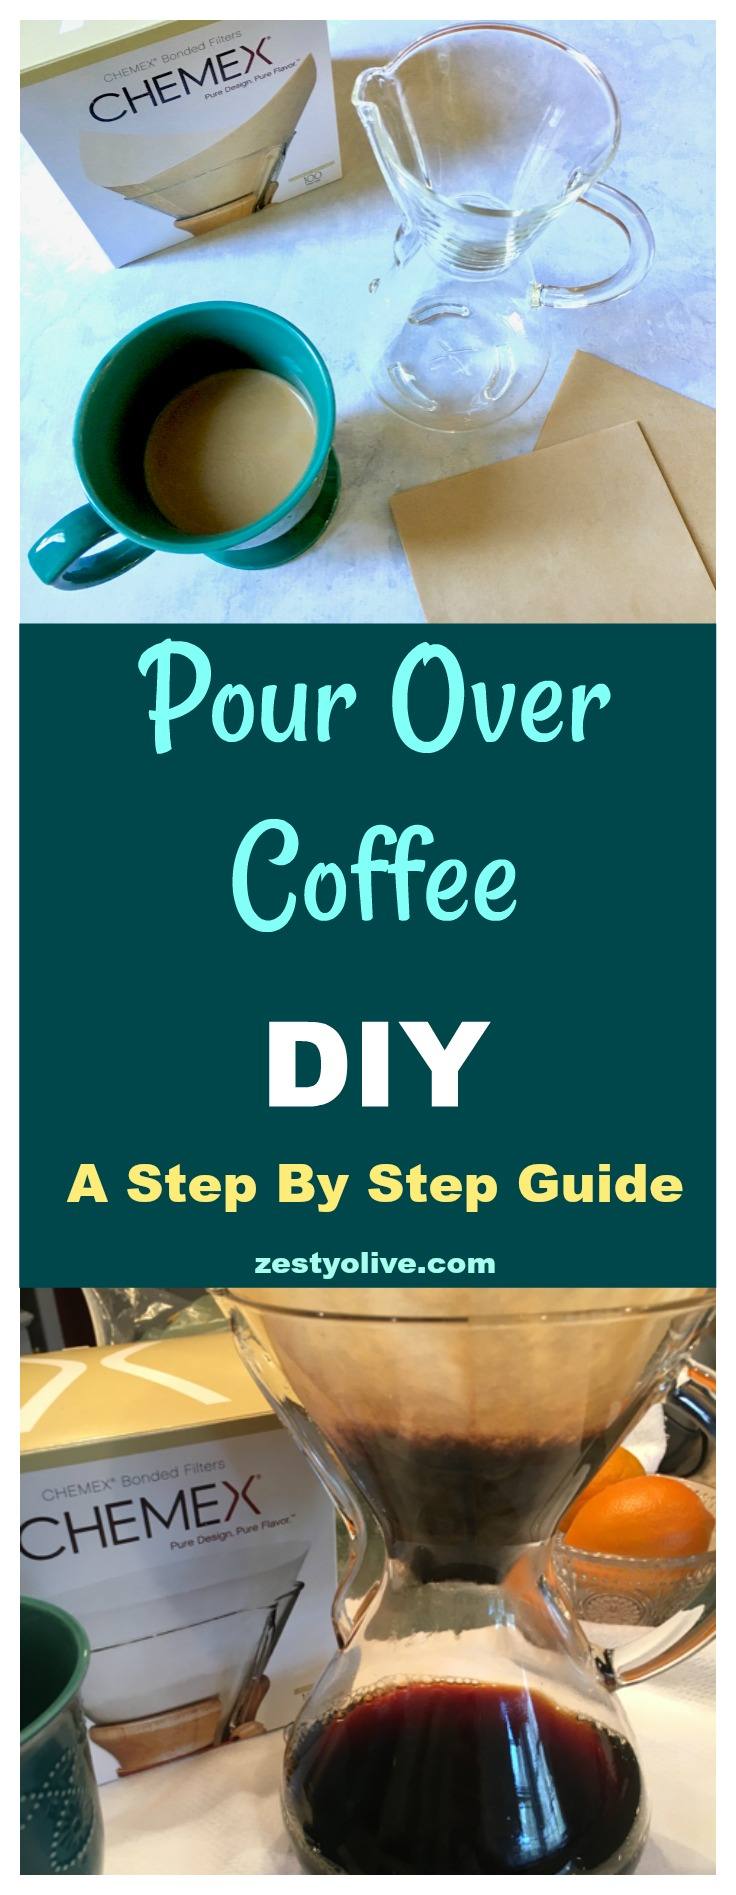 Pour Over Coffee DIY Step By Step Guide